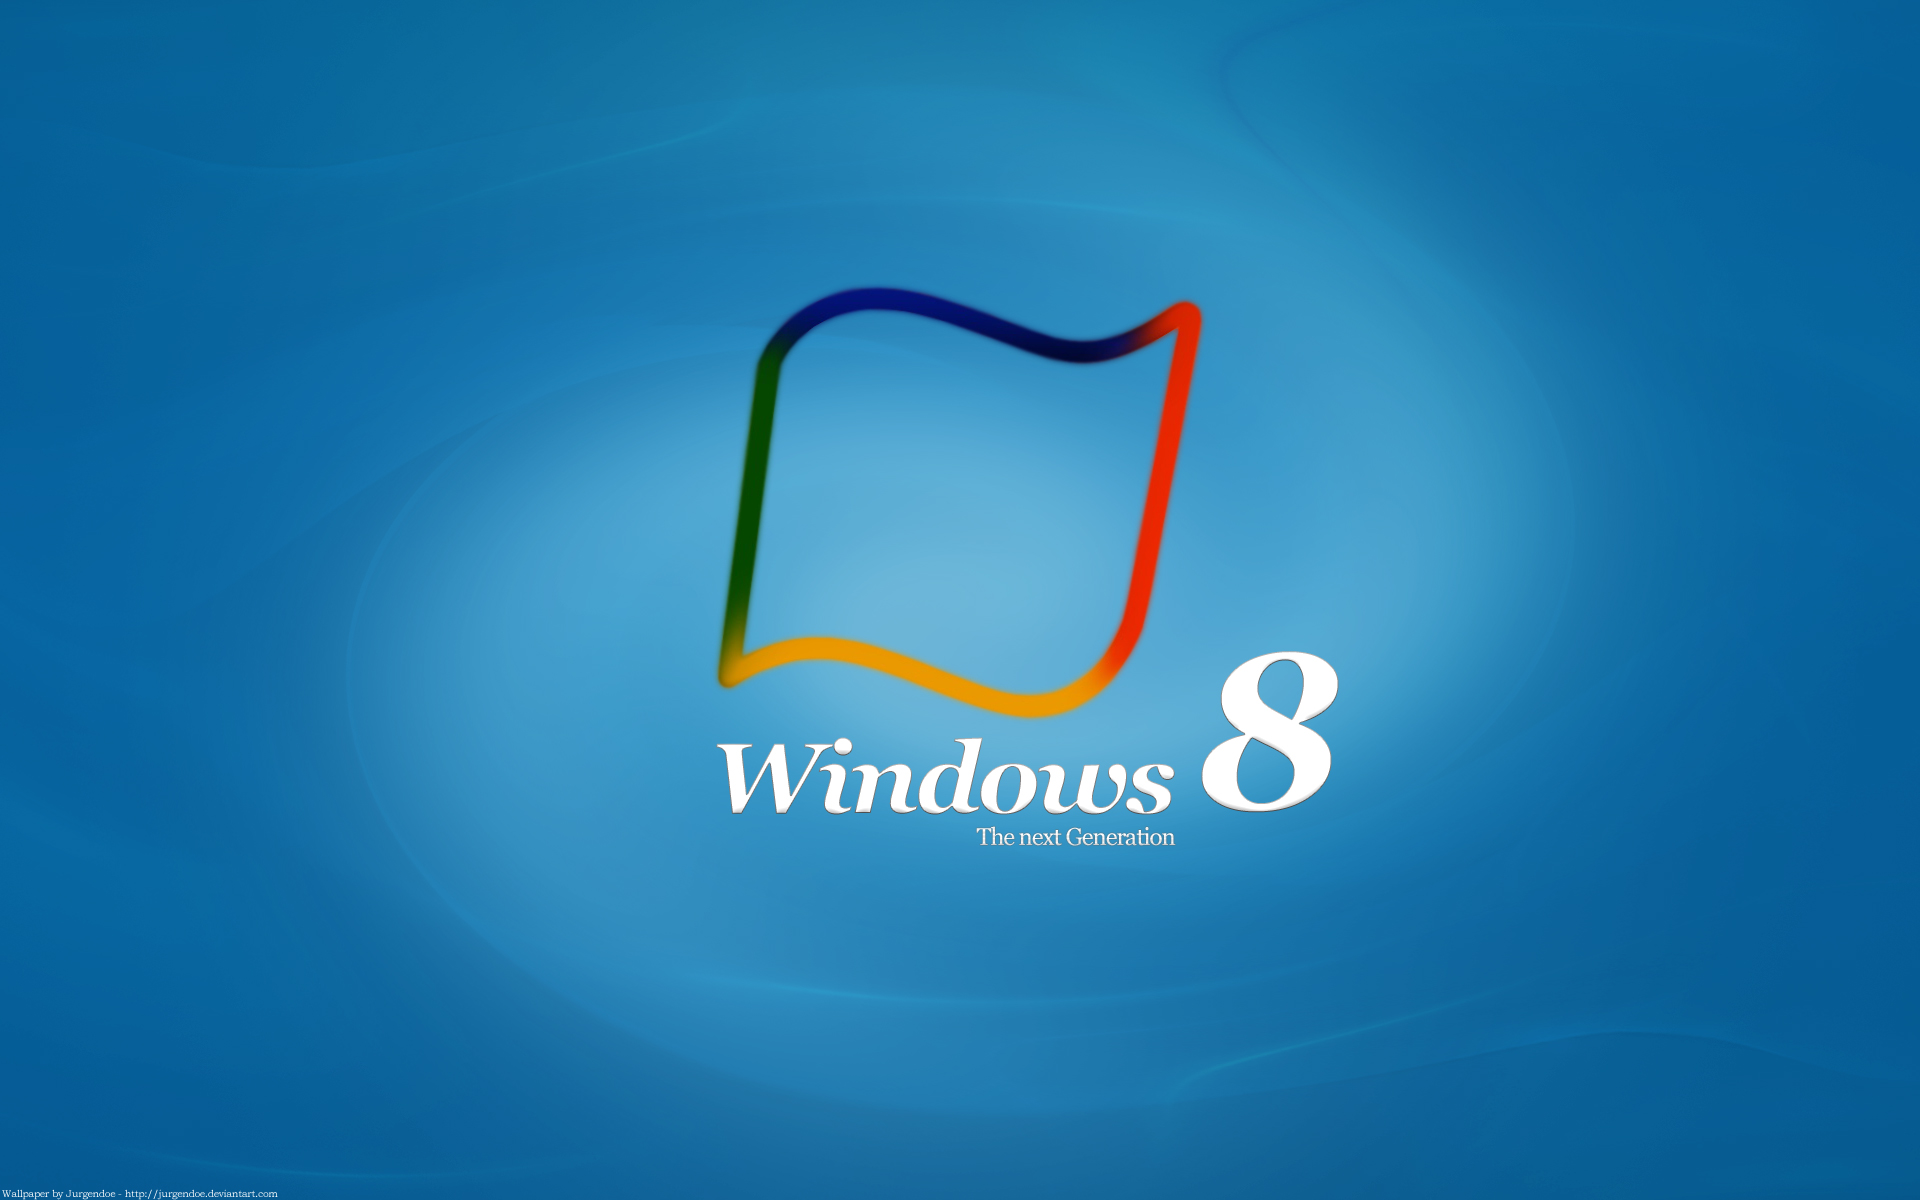 30 Beautiful Windows 8 Wallpapers in High Quality